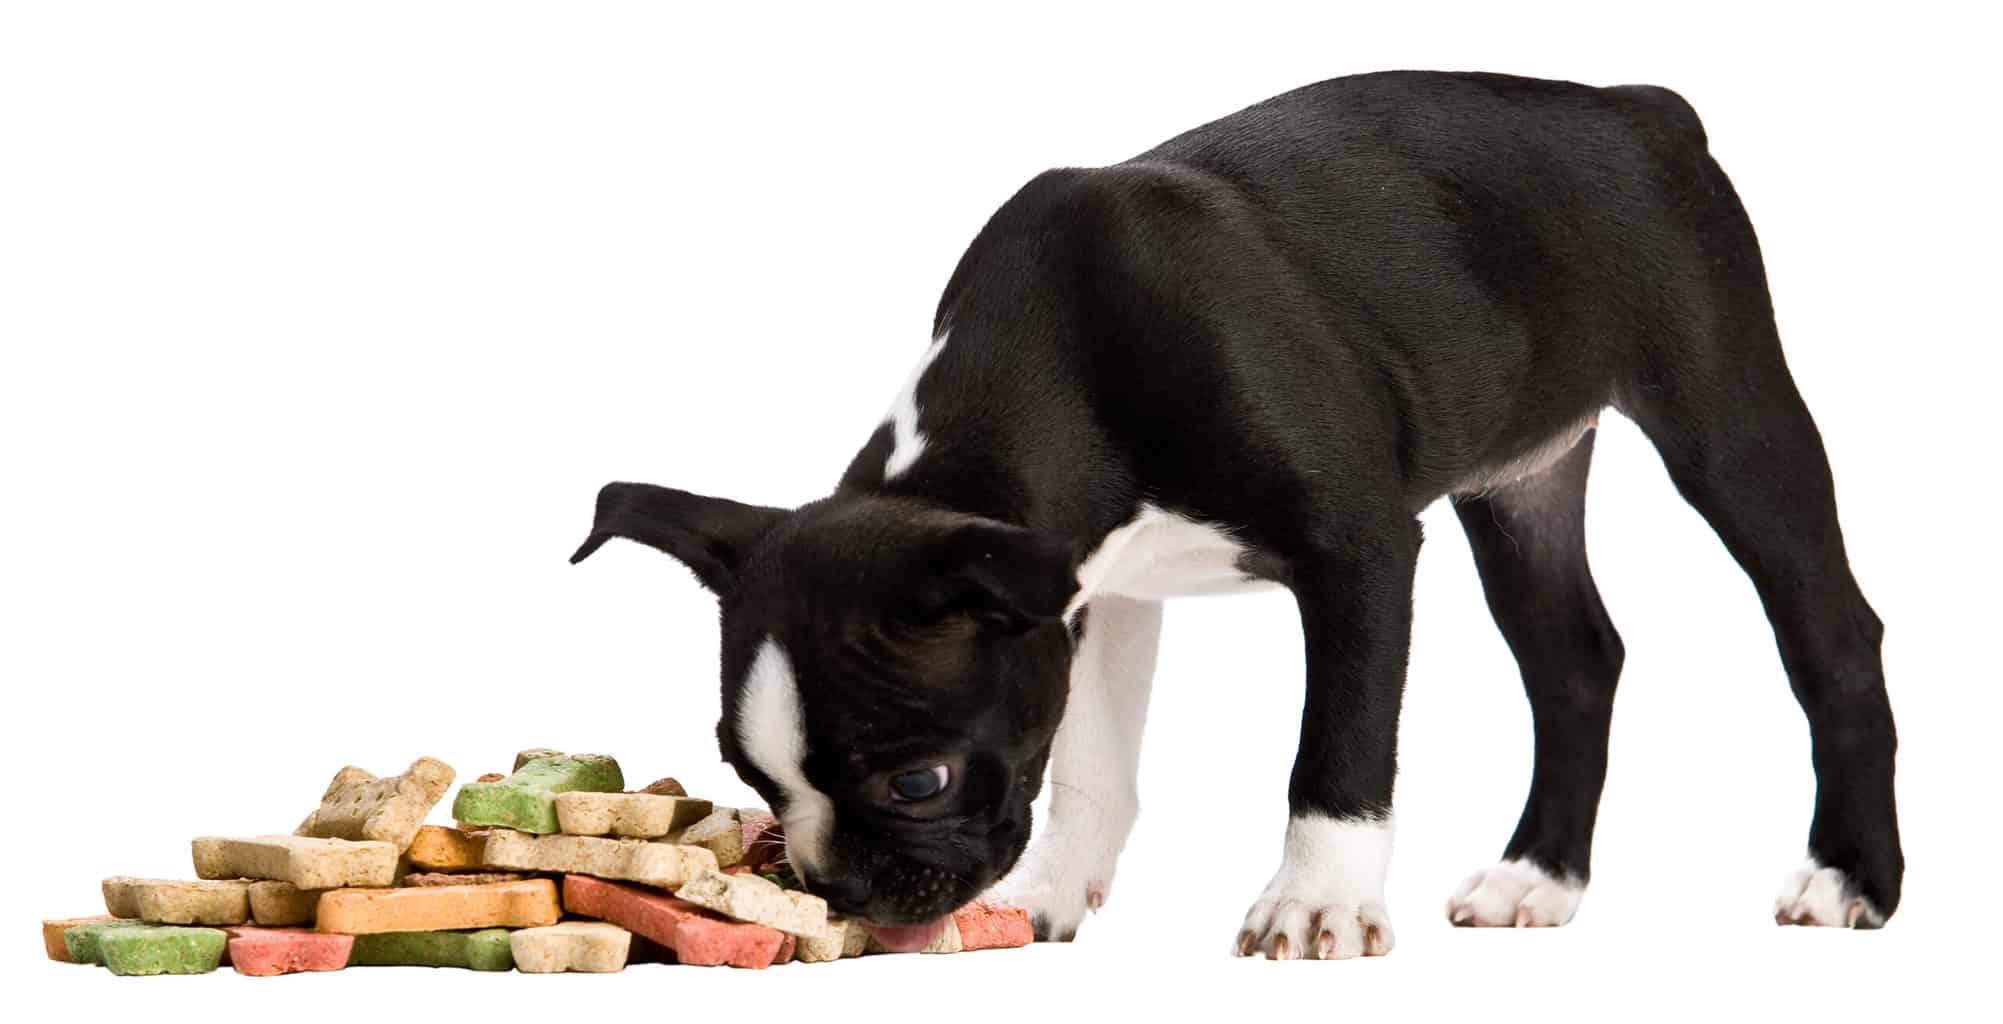 Boston Terrier Puppy sniffing his food